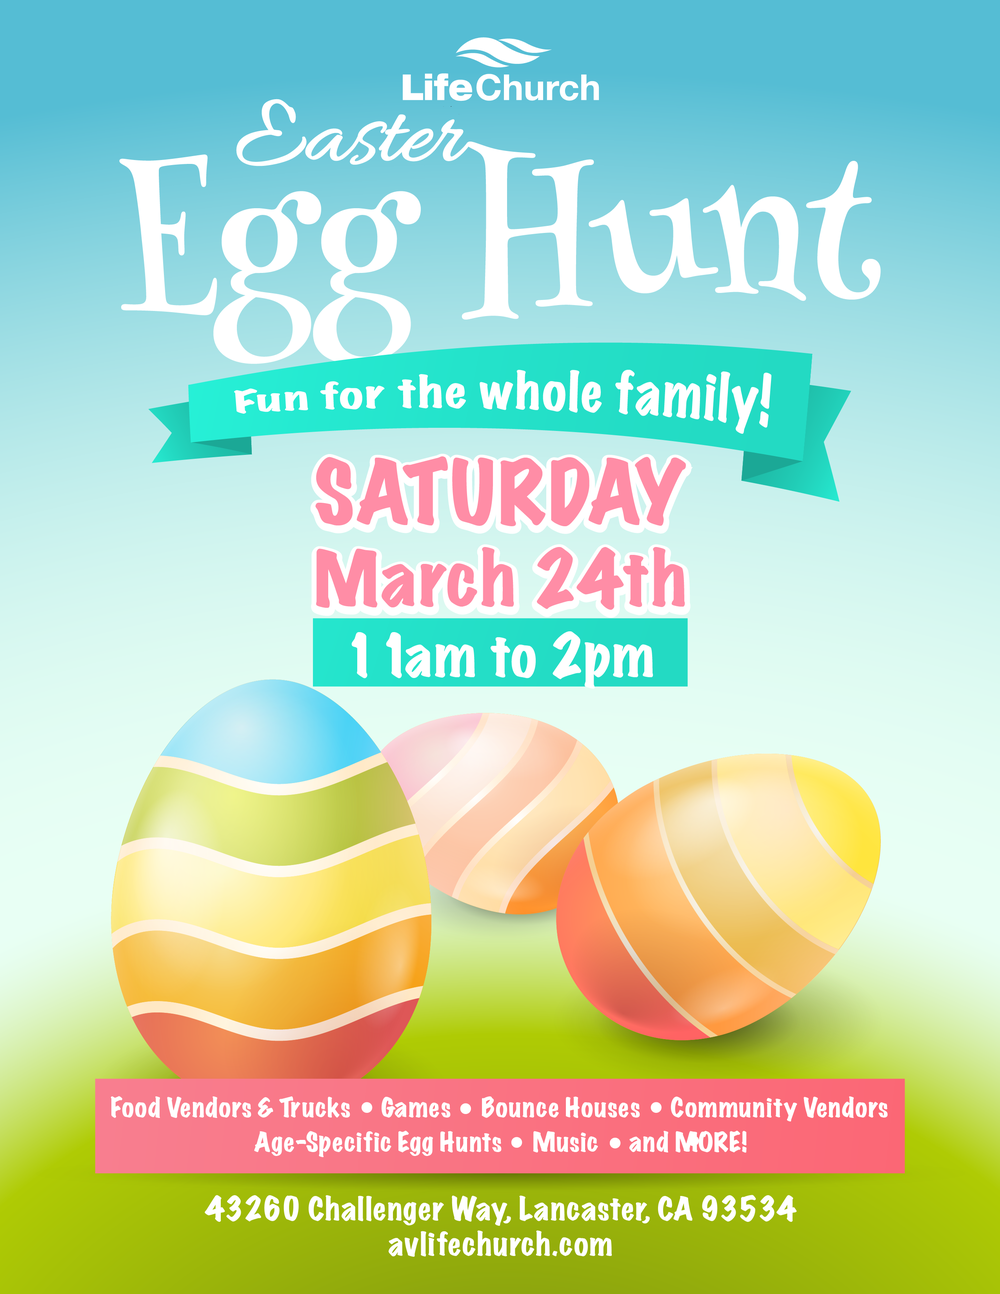 Life Church Annual Easter Egg Hunt - Saturday, March 24 11am-2pm43260 Challenger Way, Lancaster CA 93535